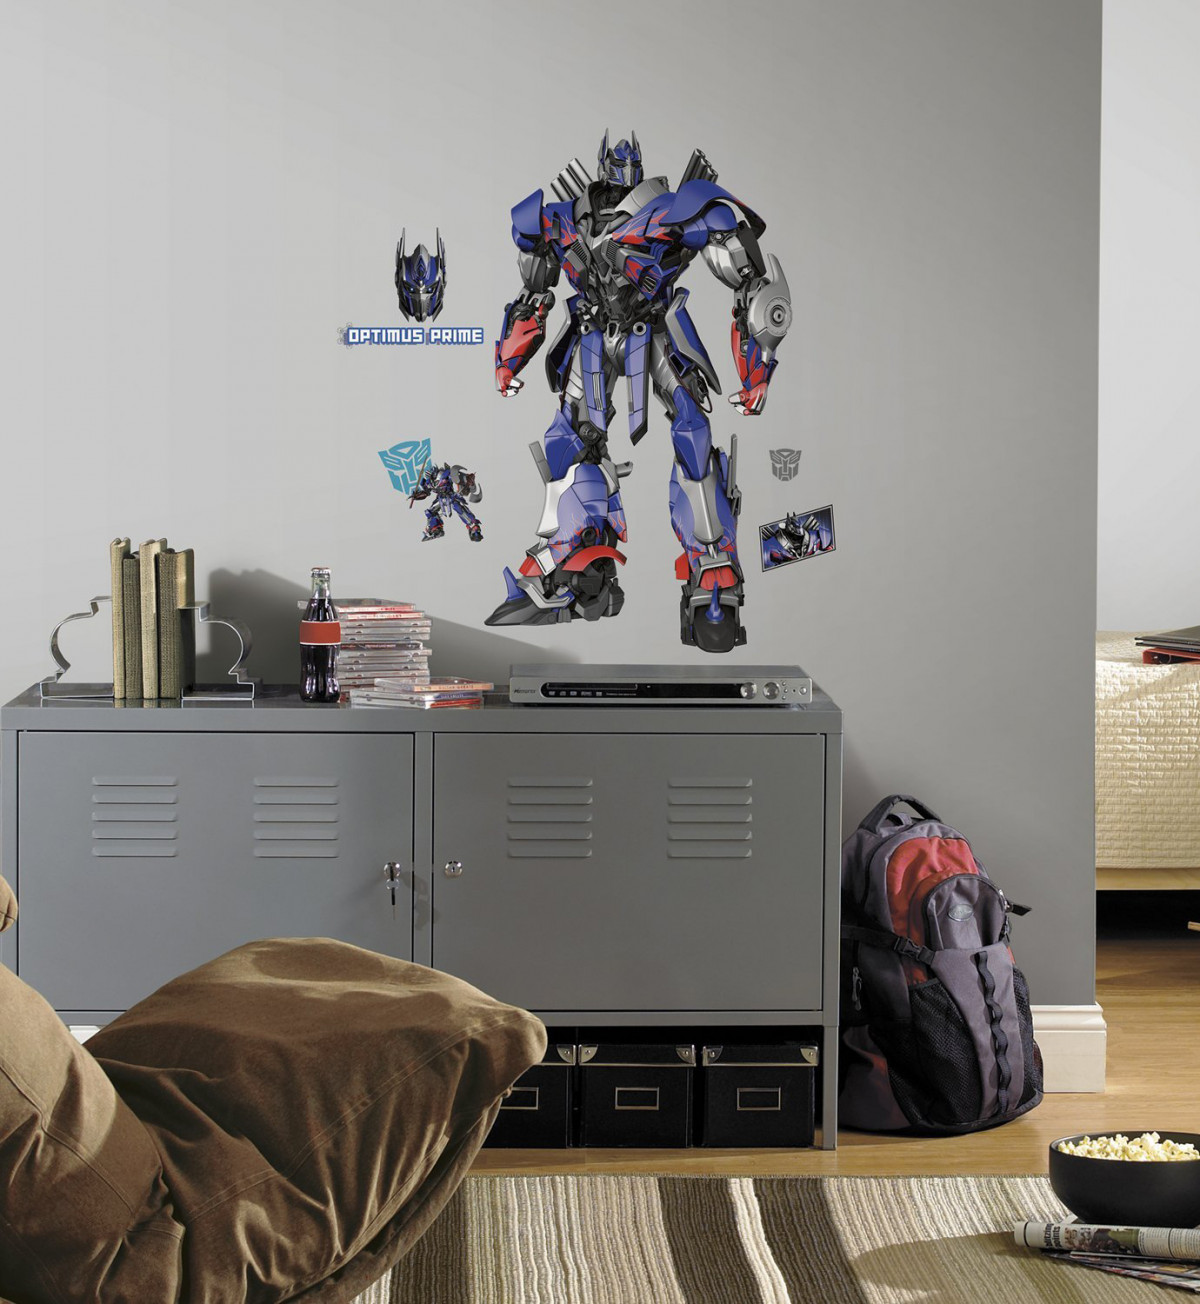 Sticker geant repositionnable Transformers Optimus Prime Hasbro 68,6CM X 101,6CM